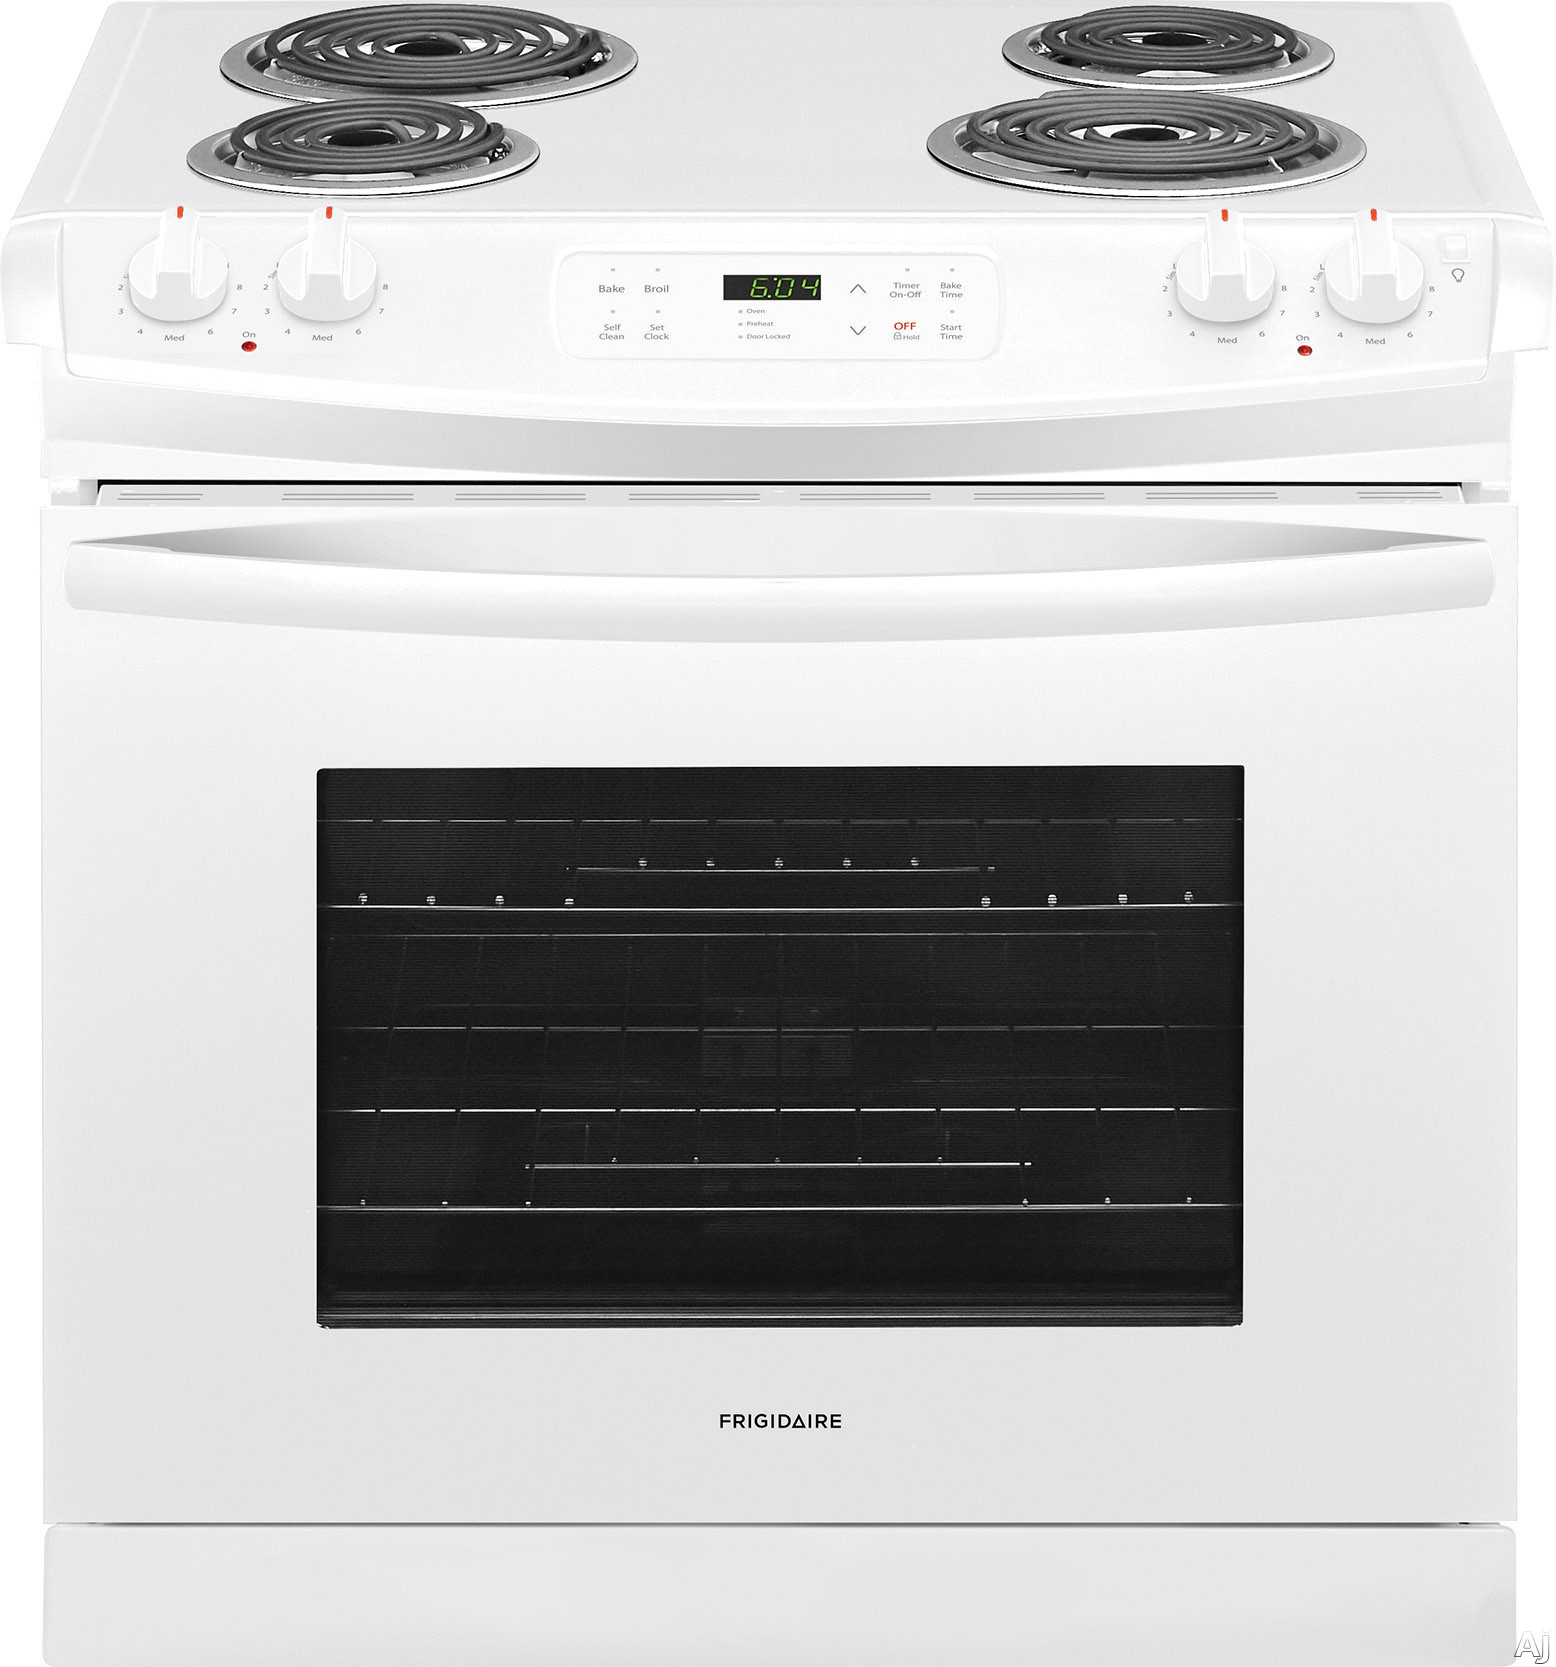 Frigidaire FFED3016TW 30 Inch Drop-In Electric Range with Vari-Broil™ Hi/Lo, Oven Auto Shut-Off, One-Touch Self Clean, Ready-Select® Controls, ADA Compliant and 4.6 cu. ft. Oven Capacity: Whi